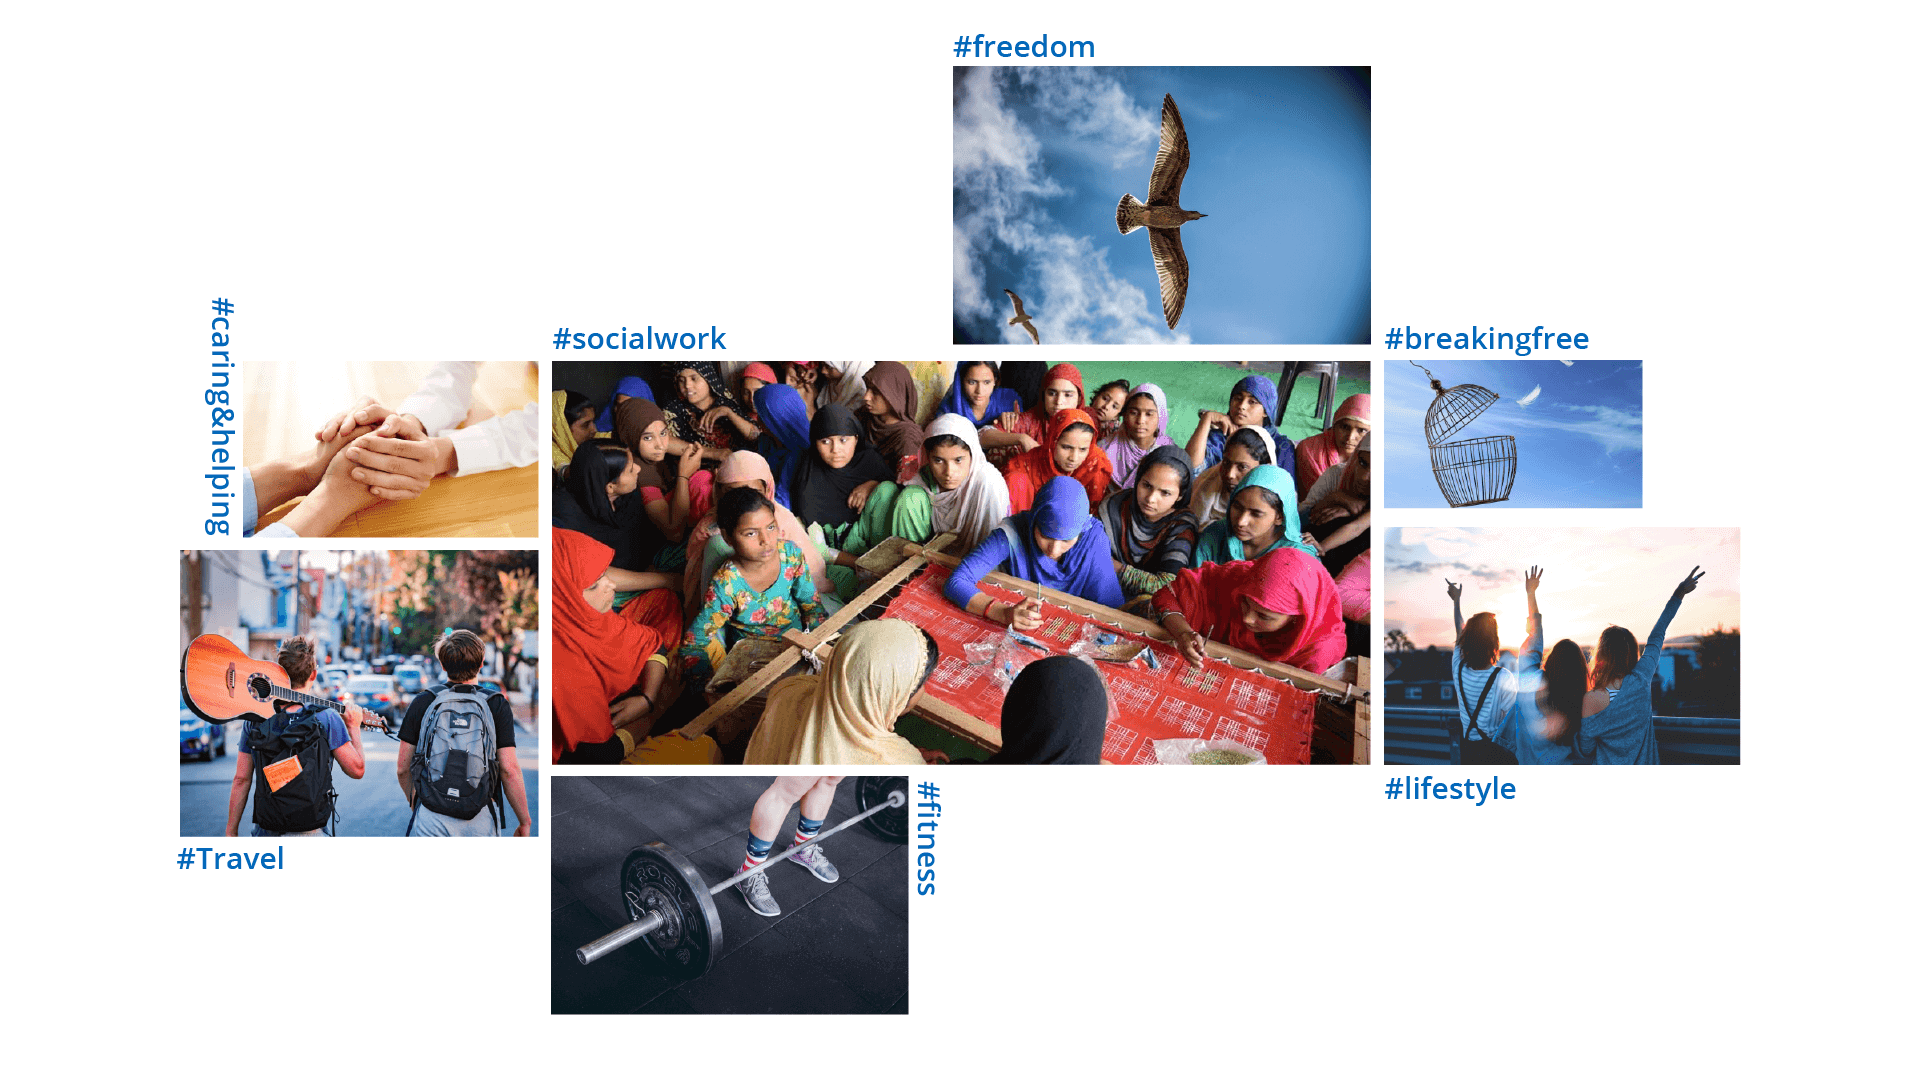 A moodboard for Hum Azad Hai, which also has the brand's keywords